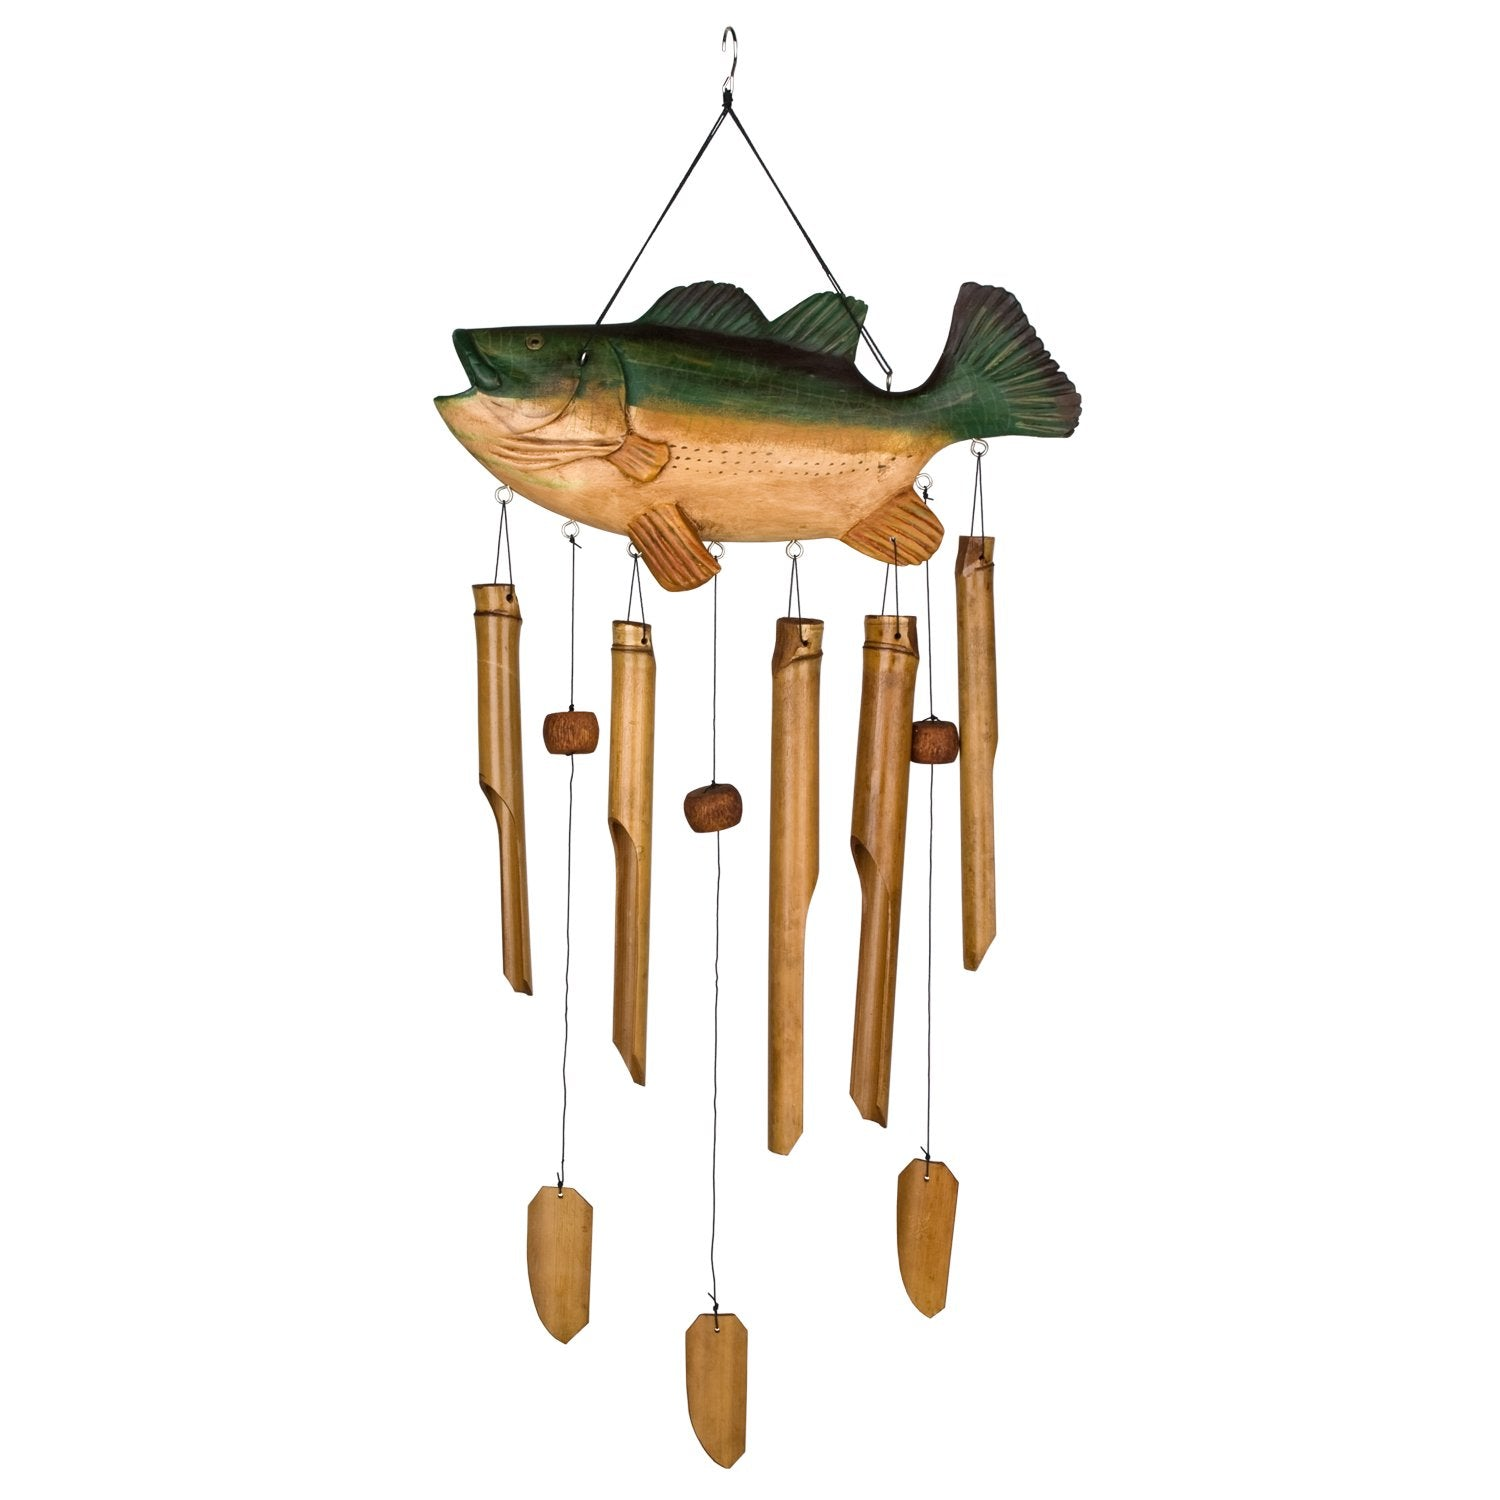 Animal Bamboo Chime - Bass Fish full product image